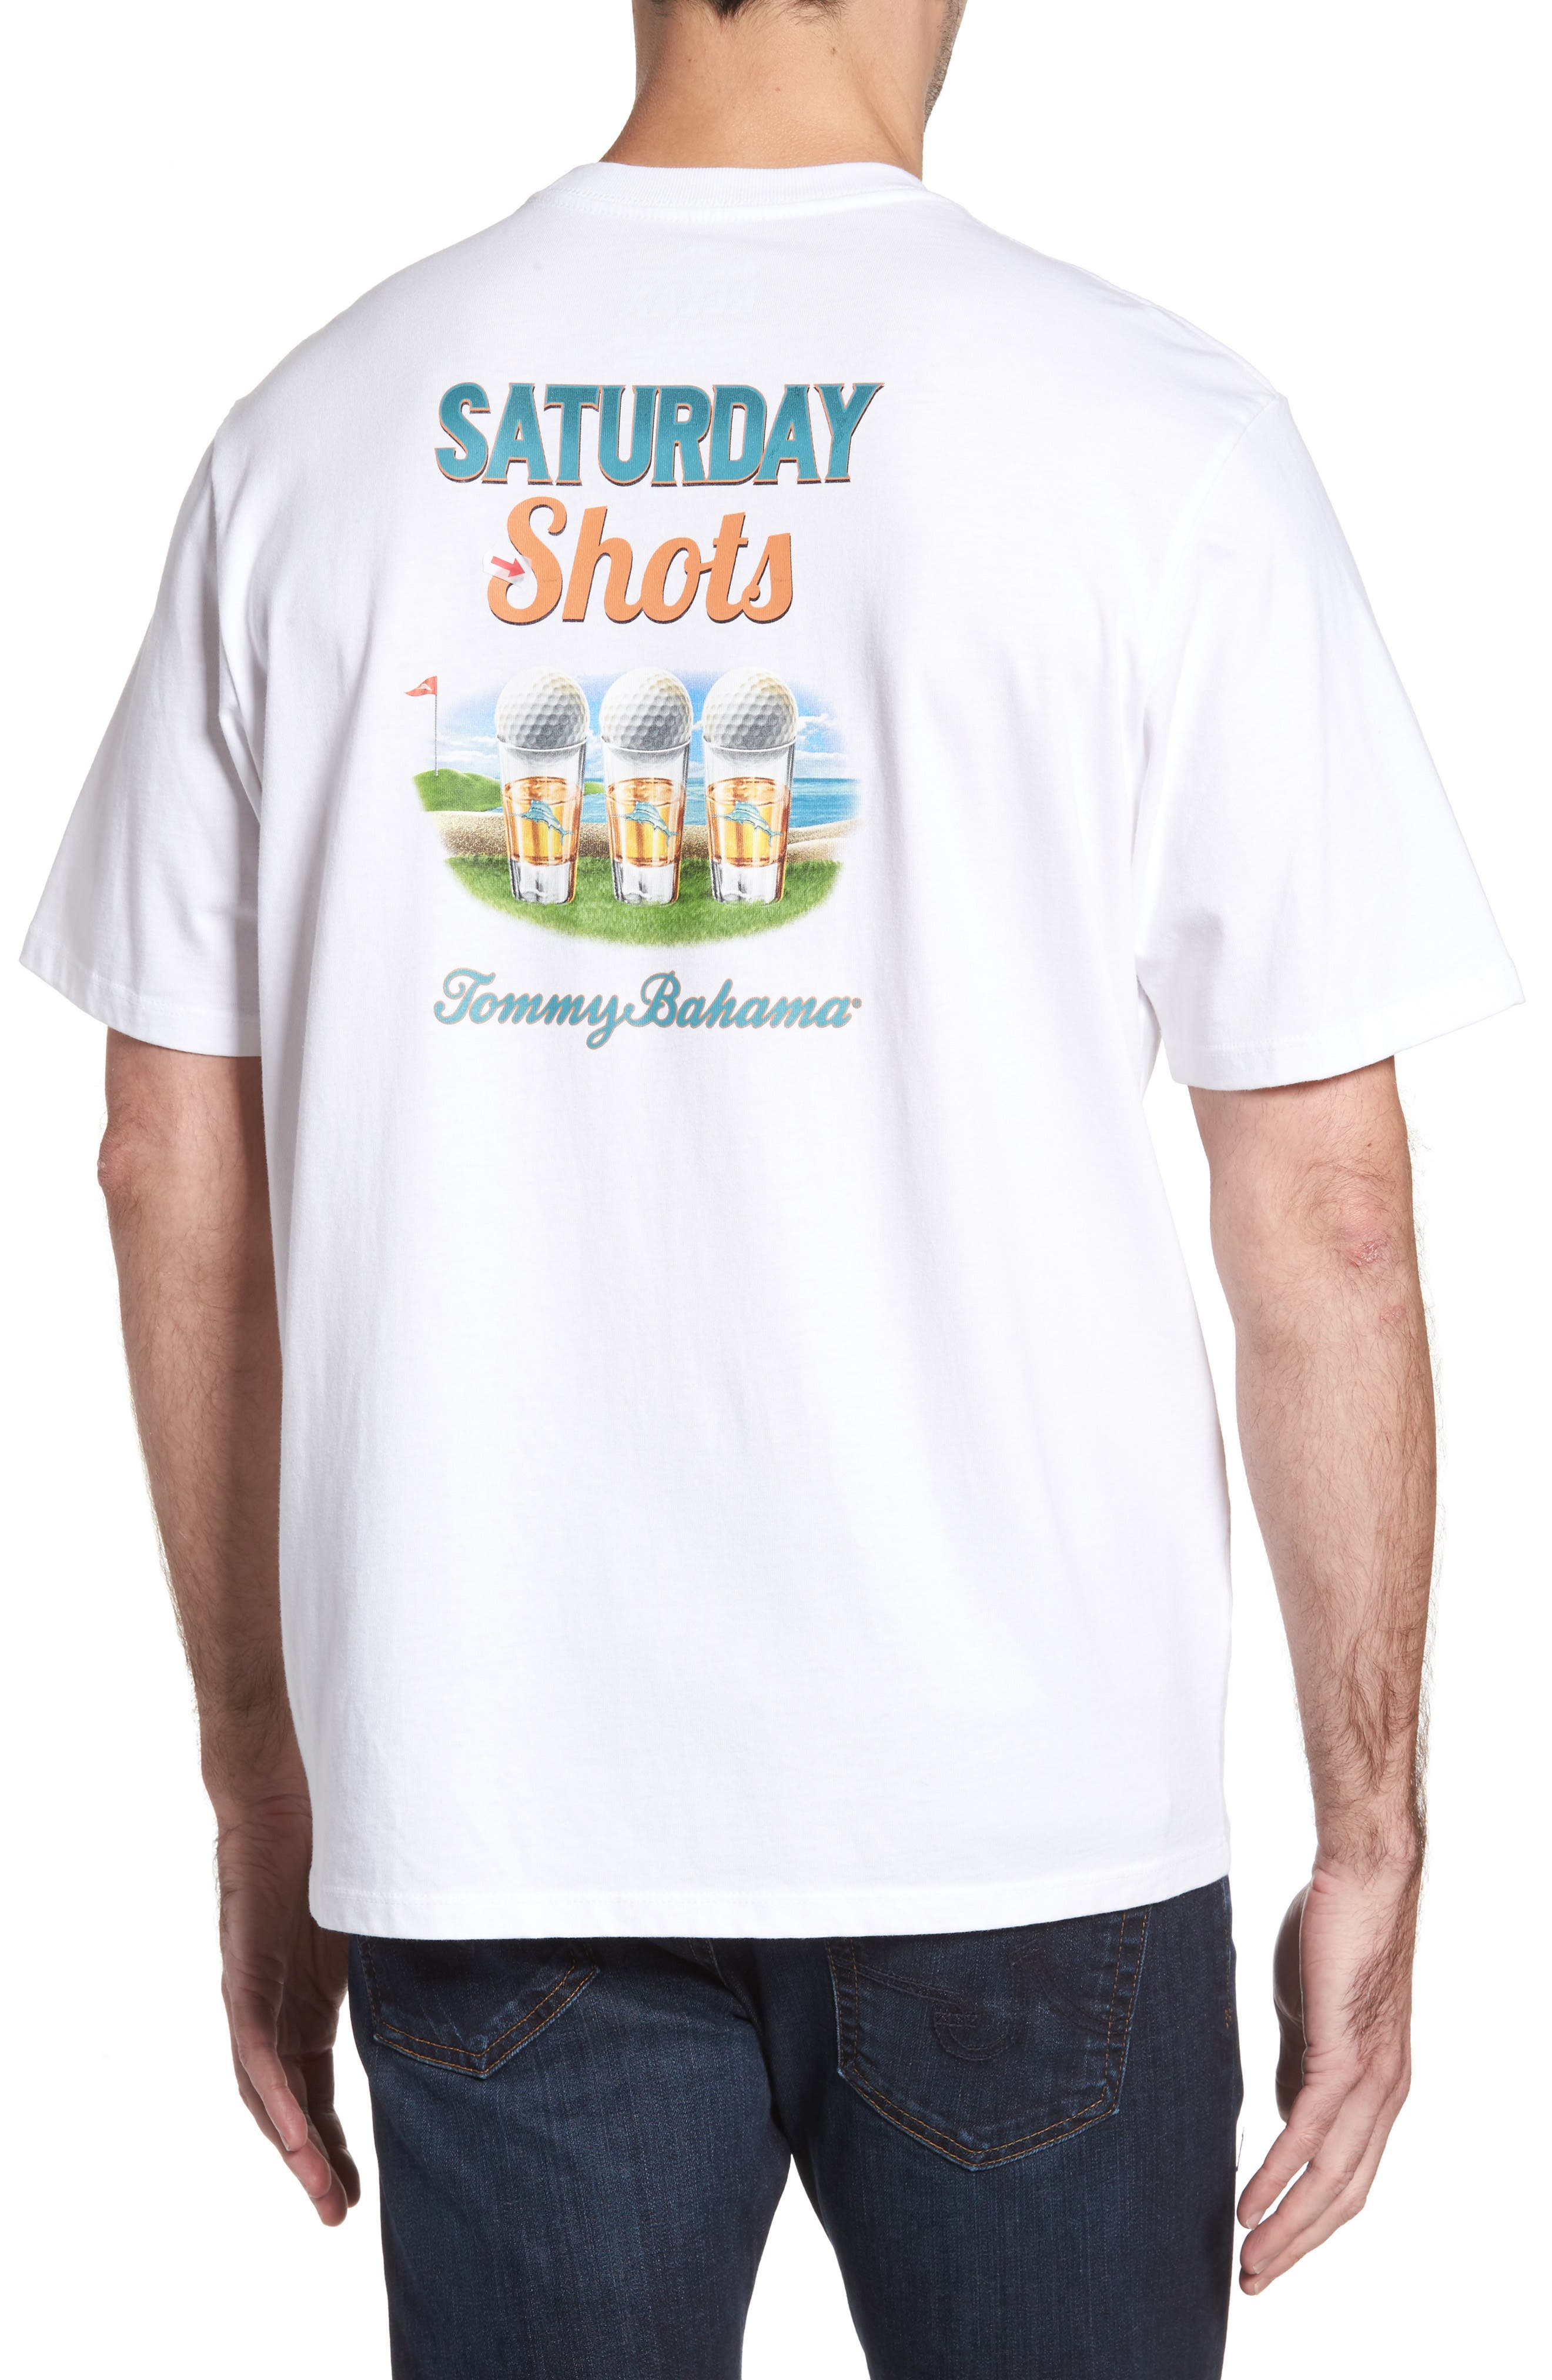 Alternate Image 1 Selected - Tommy Bahama Saturday Shots Standard Fit T-Shirt